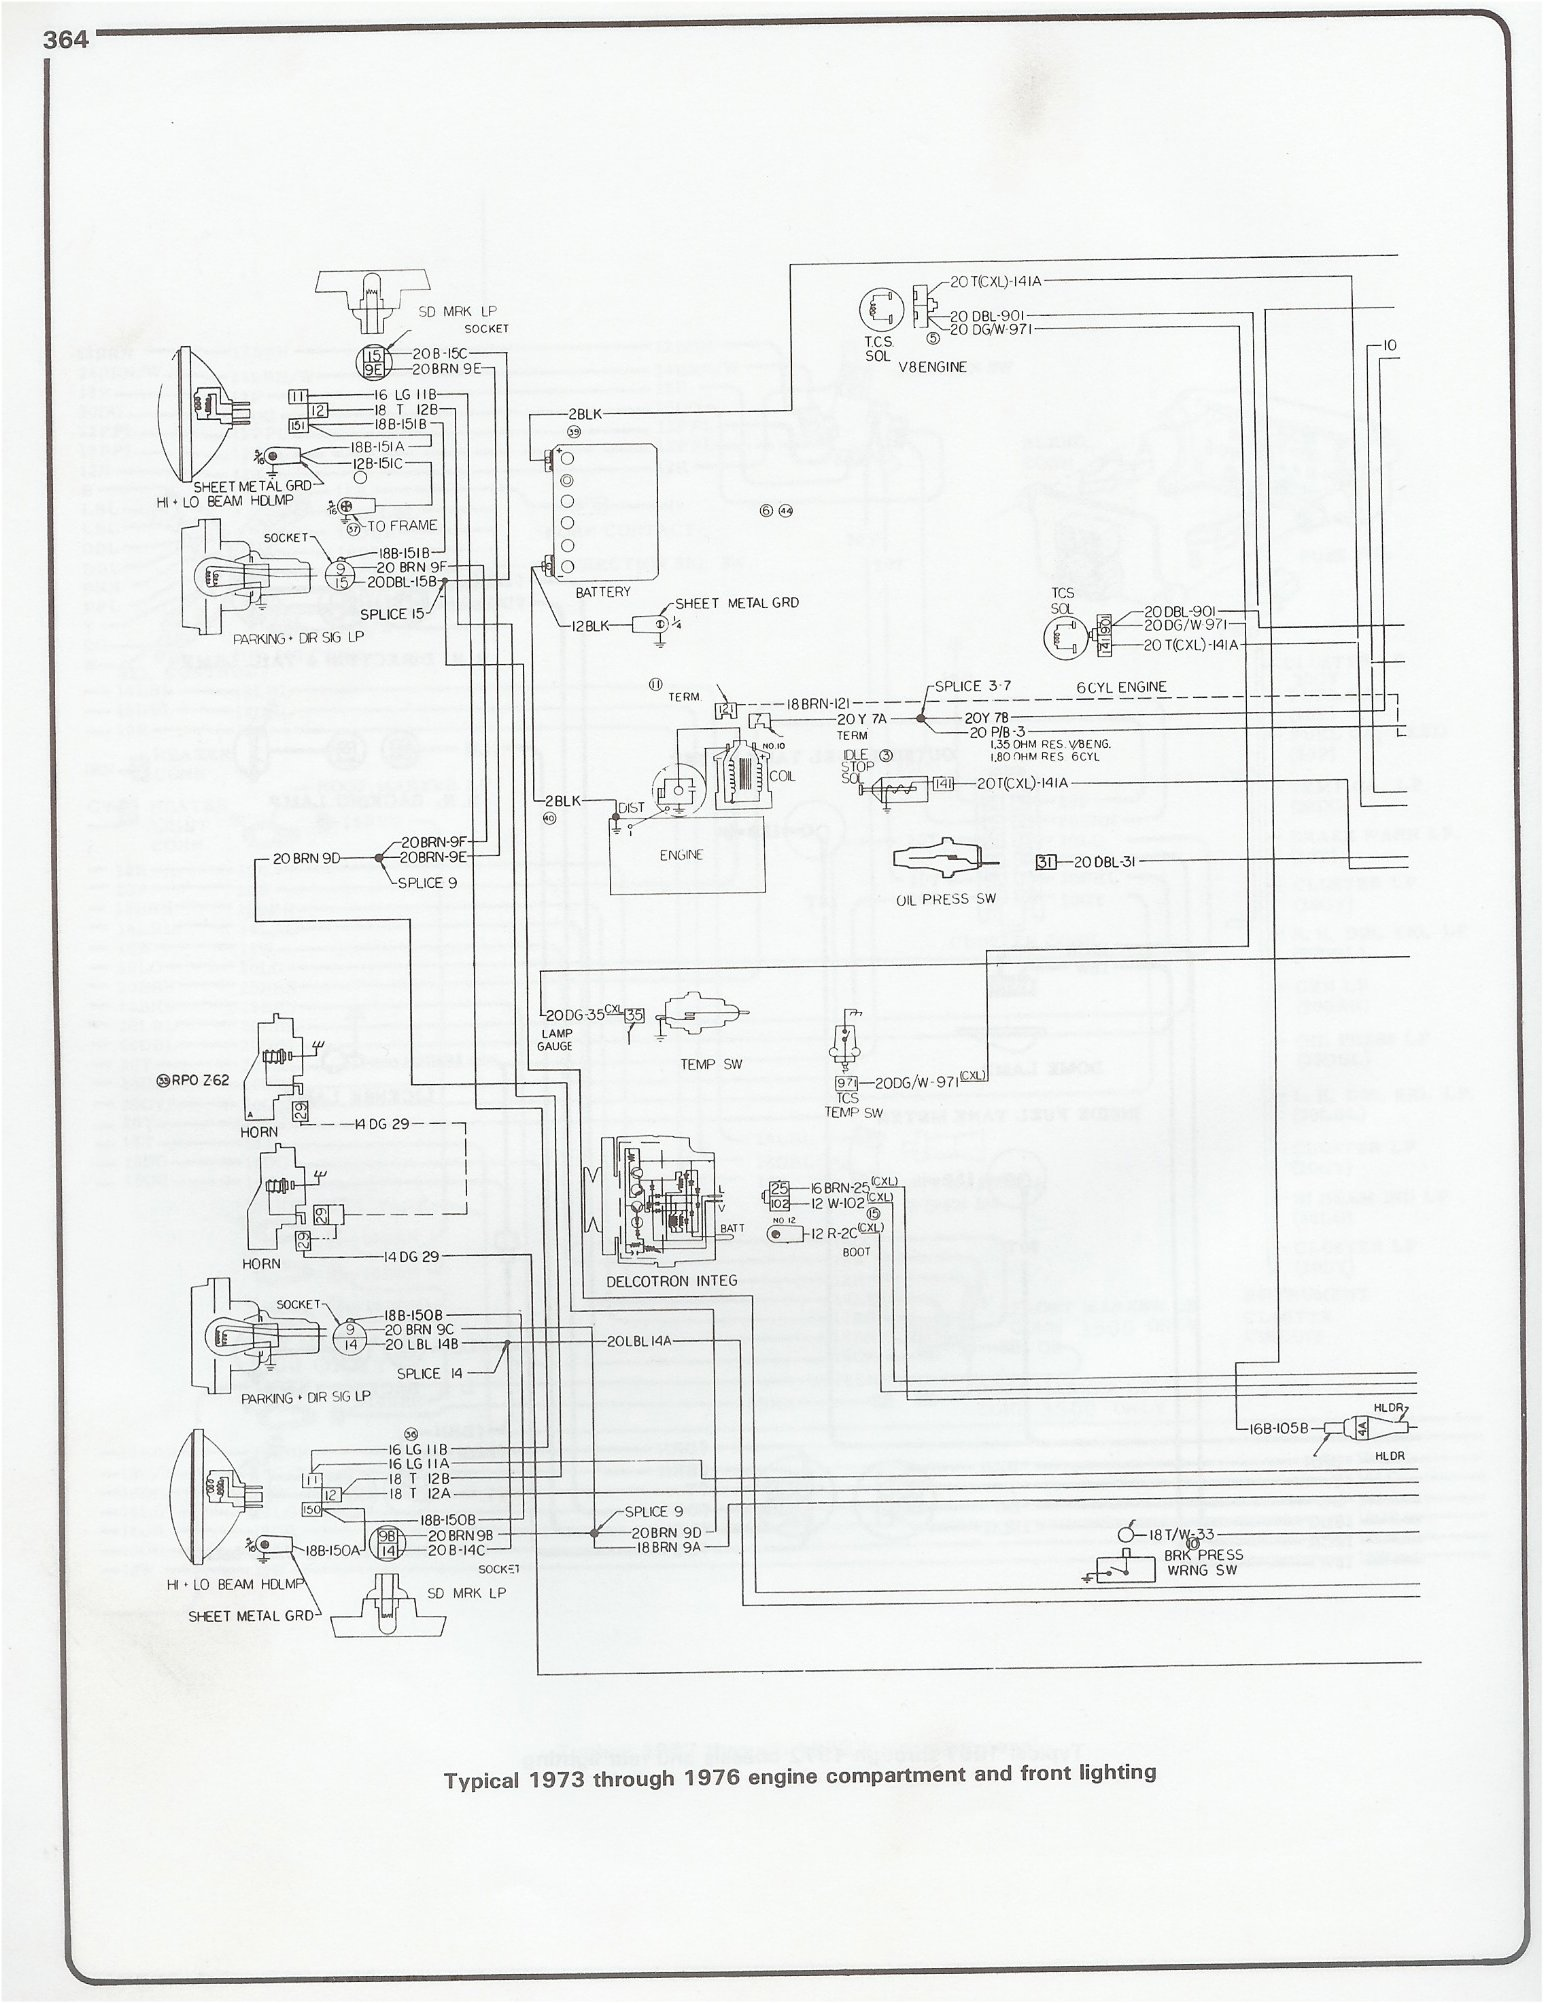 1976 Corvette Fuse Panel Diagram Wiring Library Chevelle 76 C10 Data Schema Chevy Box